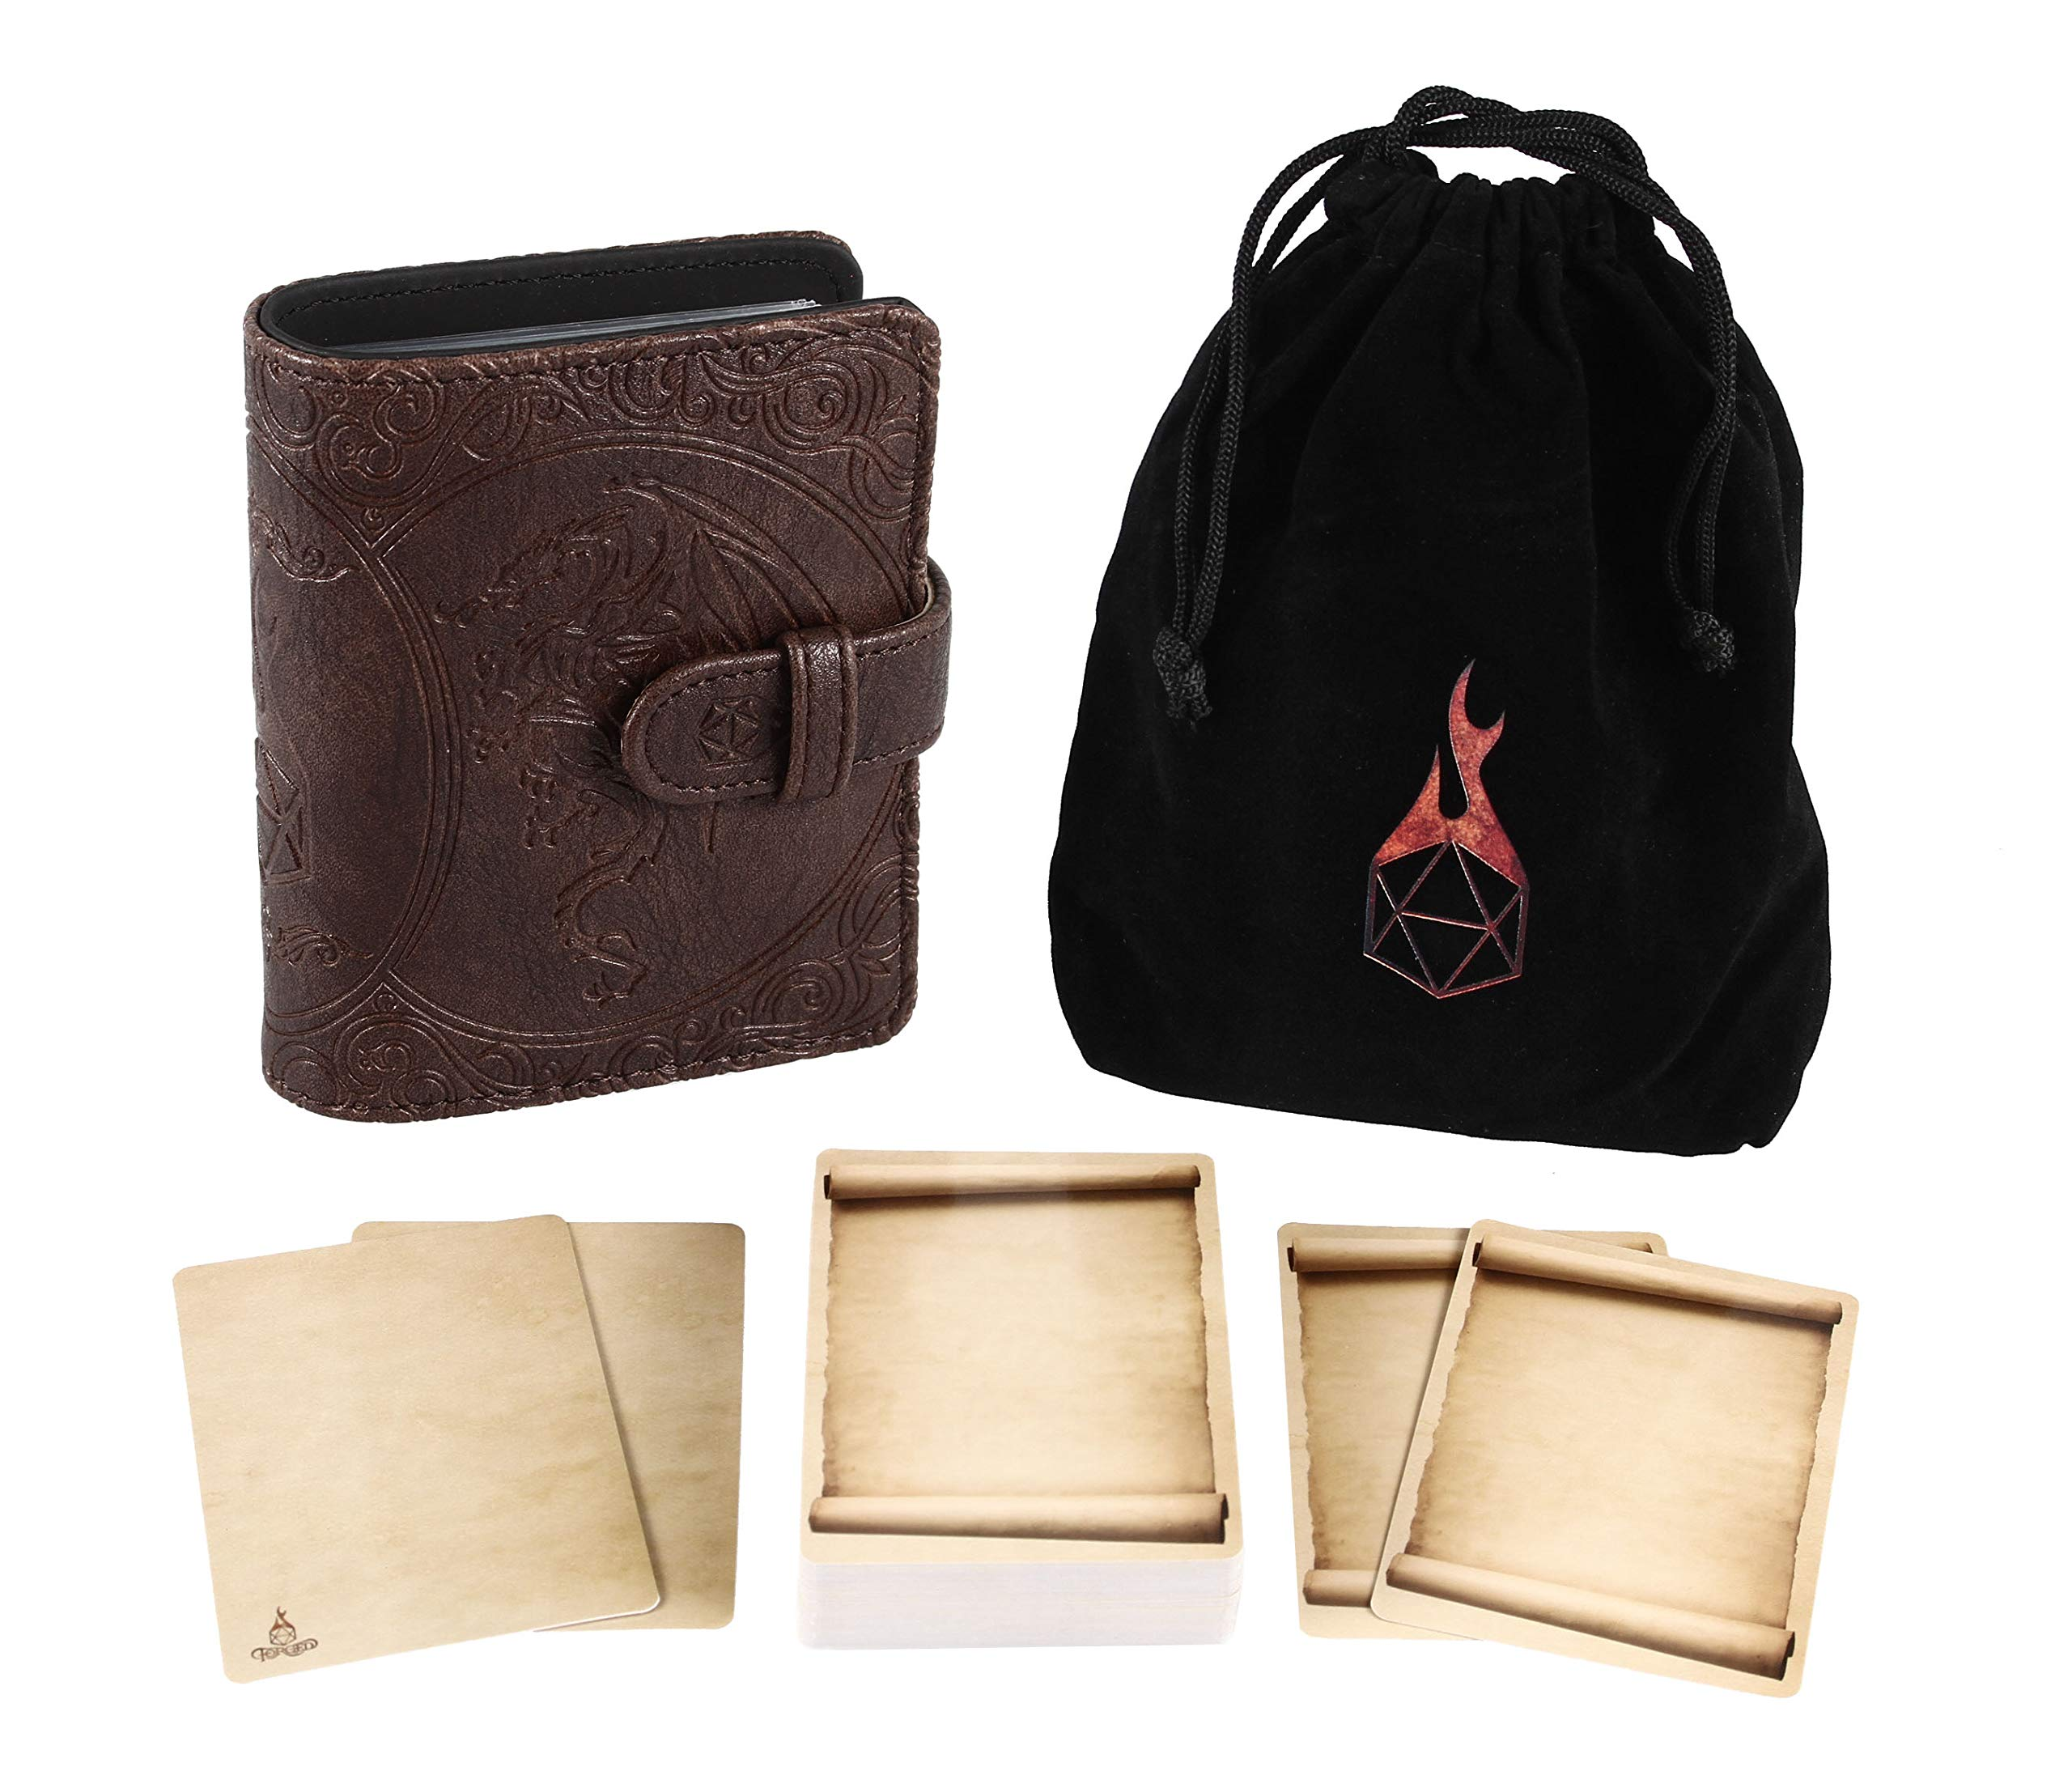 Forged Dice Co Book of Incantations (Dragon Edition) & Deck of Dry Erase Spell Cards with Velvet Storage Bag - Spellbook Cards Holder for Spell or Monster Cards - Fits DND 5th Edition or Magic Cards by Forged Dice Co.